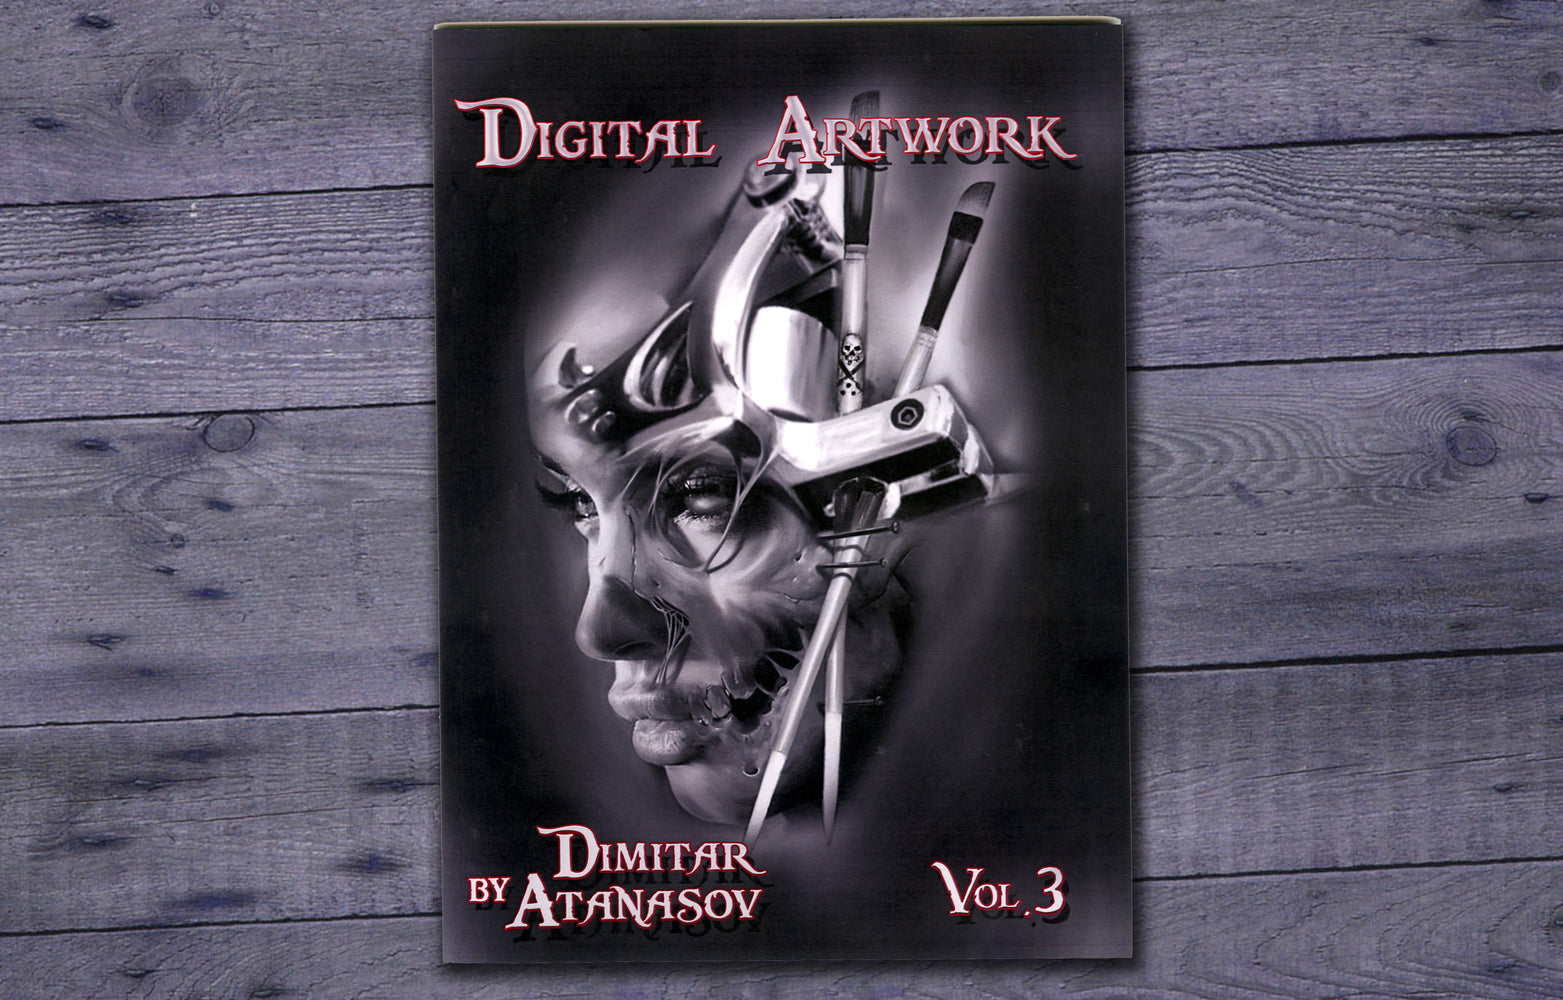 Dimitar's Digital Artwork Vol 3 Book